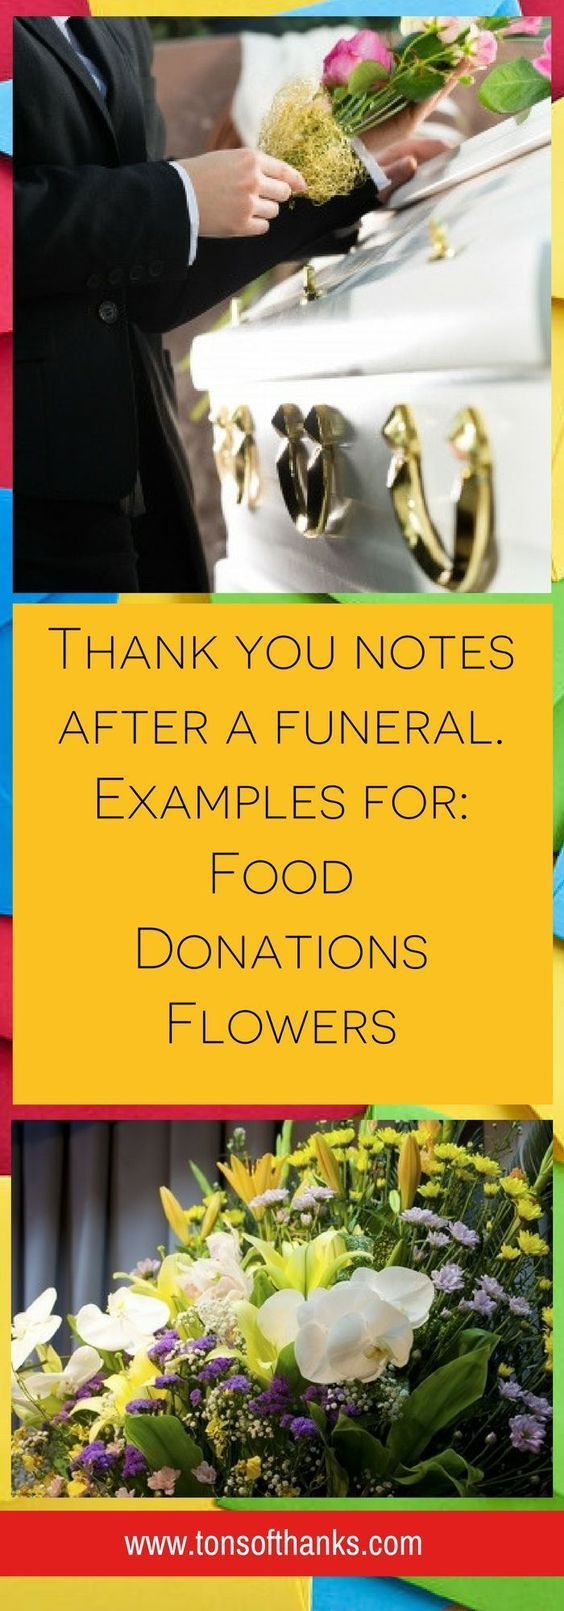 bridal shower thank you cards etiquette%0A    Funeral thank you note wording examples